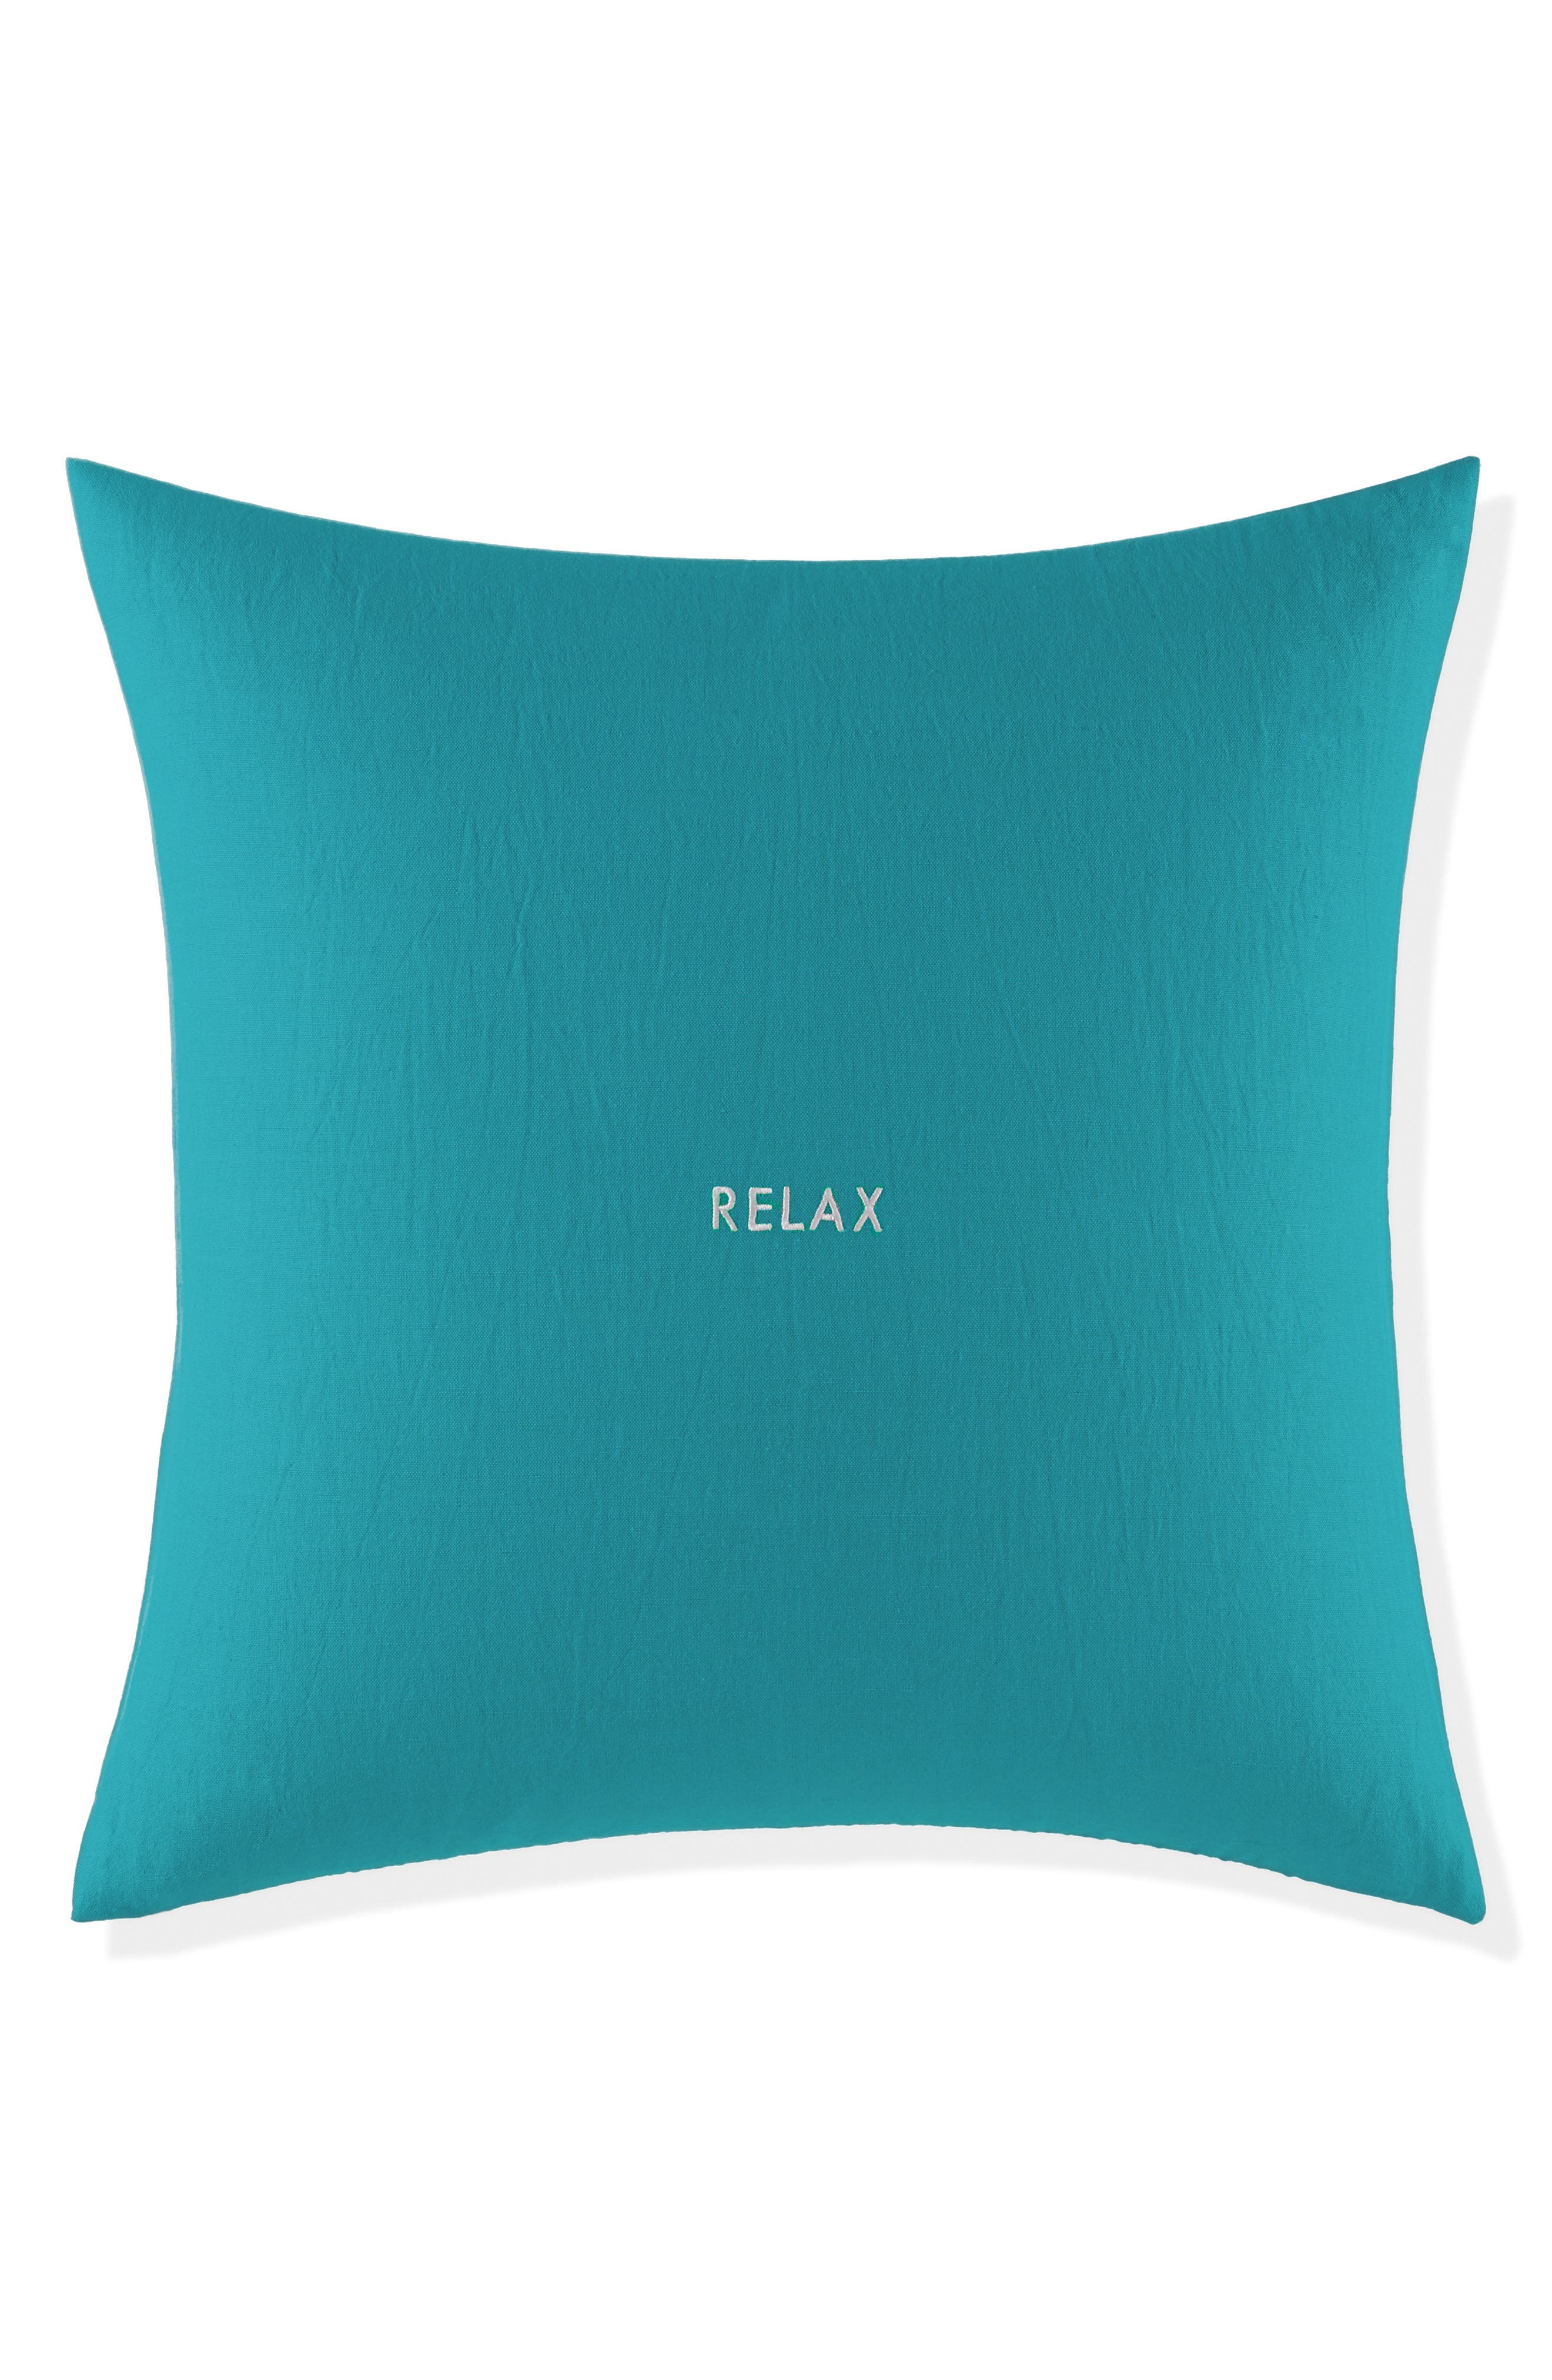 relax pillow,                         Main,                         color, Turquoise